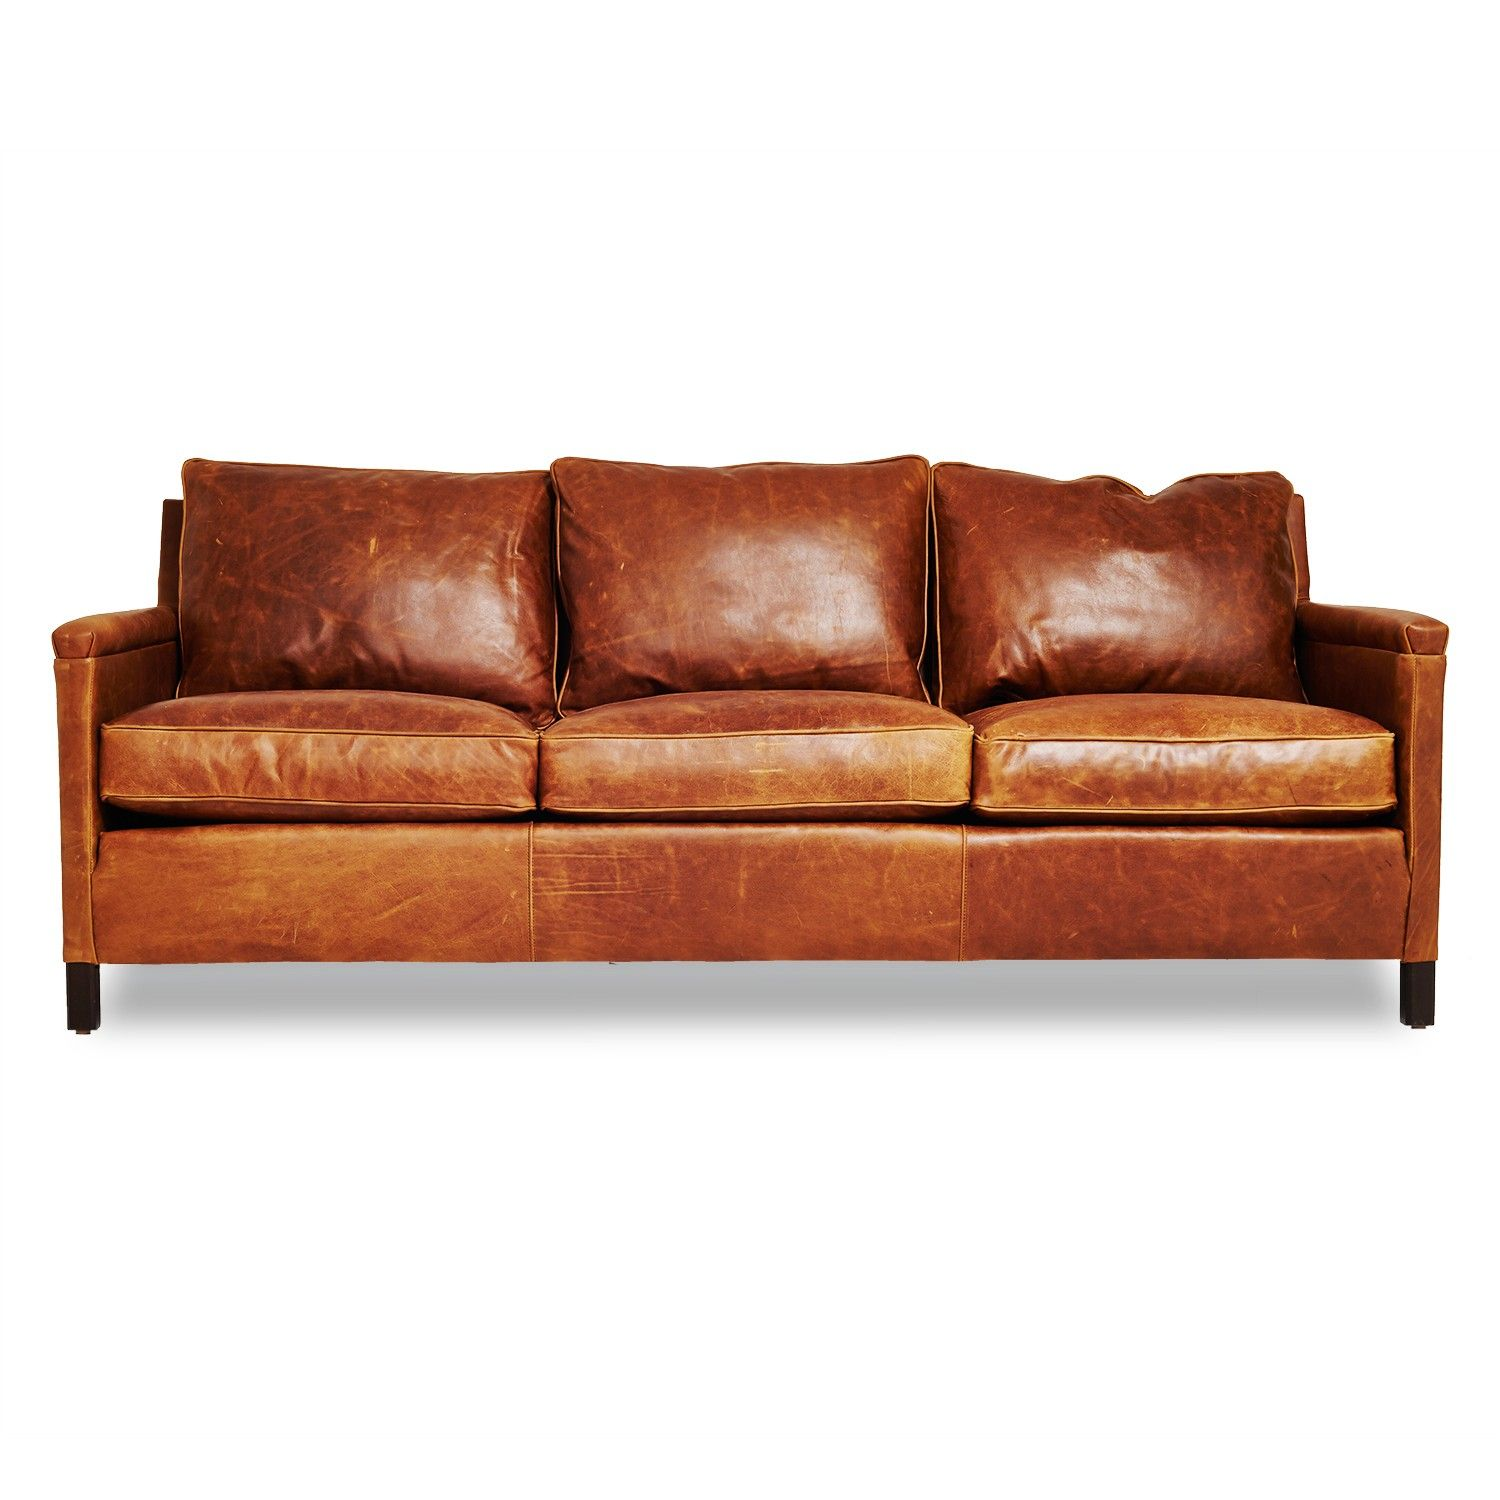 The Heston Gives An Urban Edge To The Classic Leather Sofa Featuring A Cognac Hued Exterior Offset By Careful Distressing Handcrafted From Su インテリア スタイル 家具 家